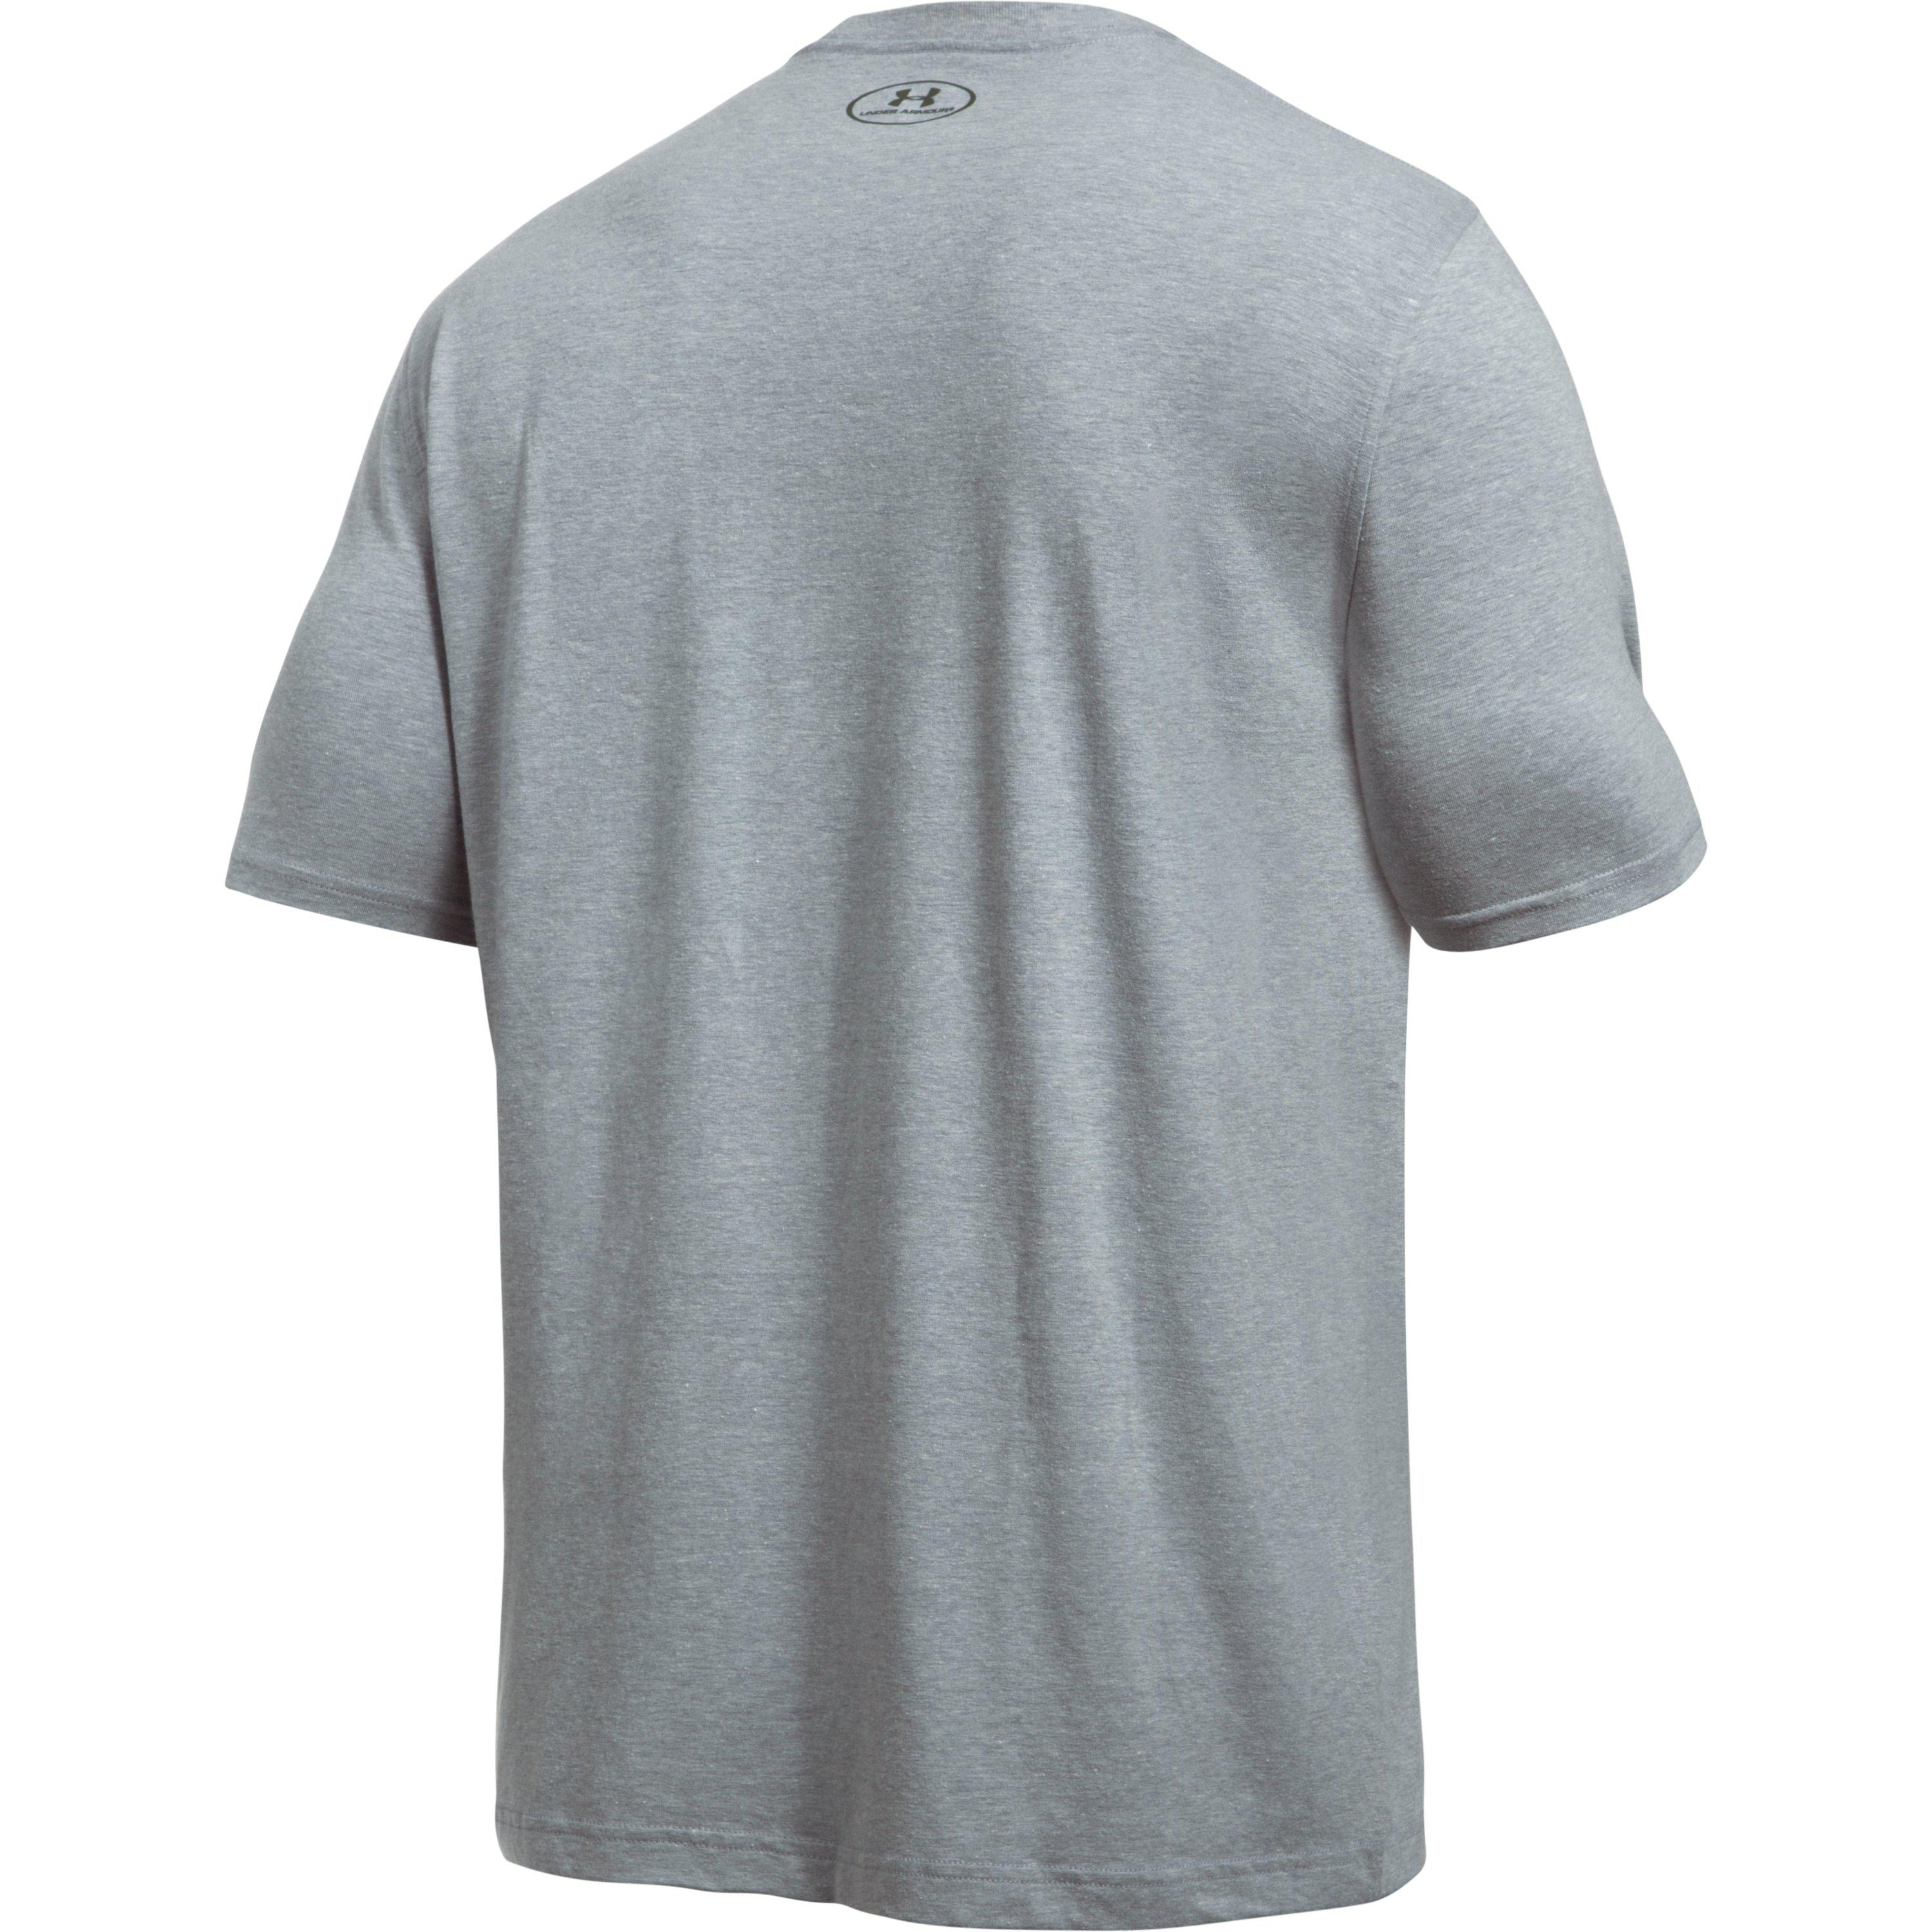 New Under Armour Mens UA Camo Knockout Charged Cotton Loose Fit Tee Shirt